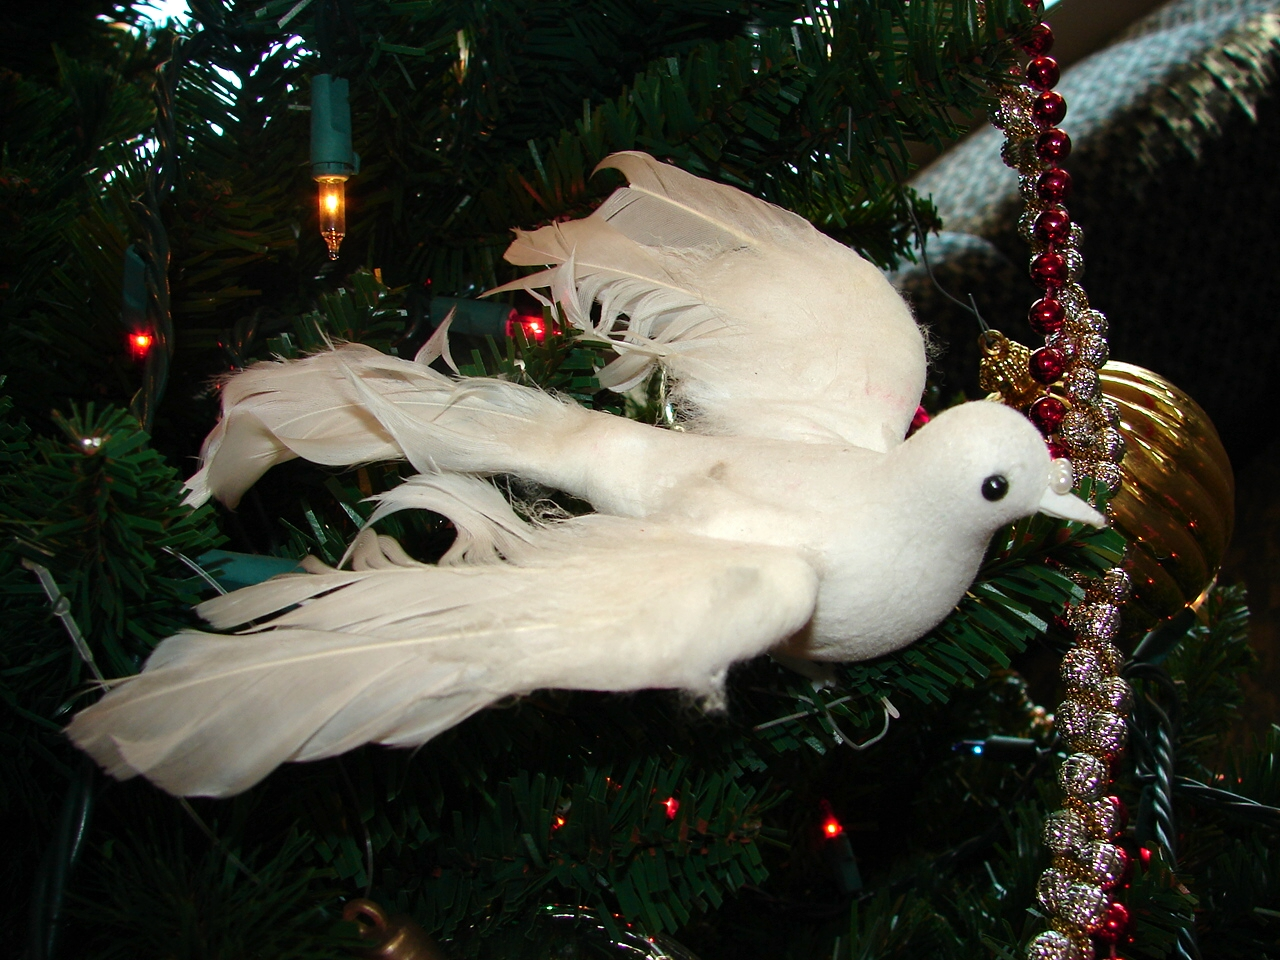 White dove ornament -  White Dove Of Peace Ornament By Fantasystock